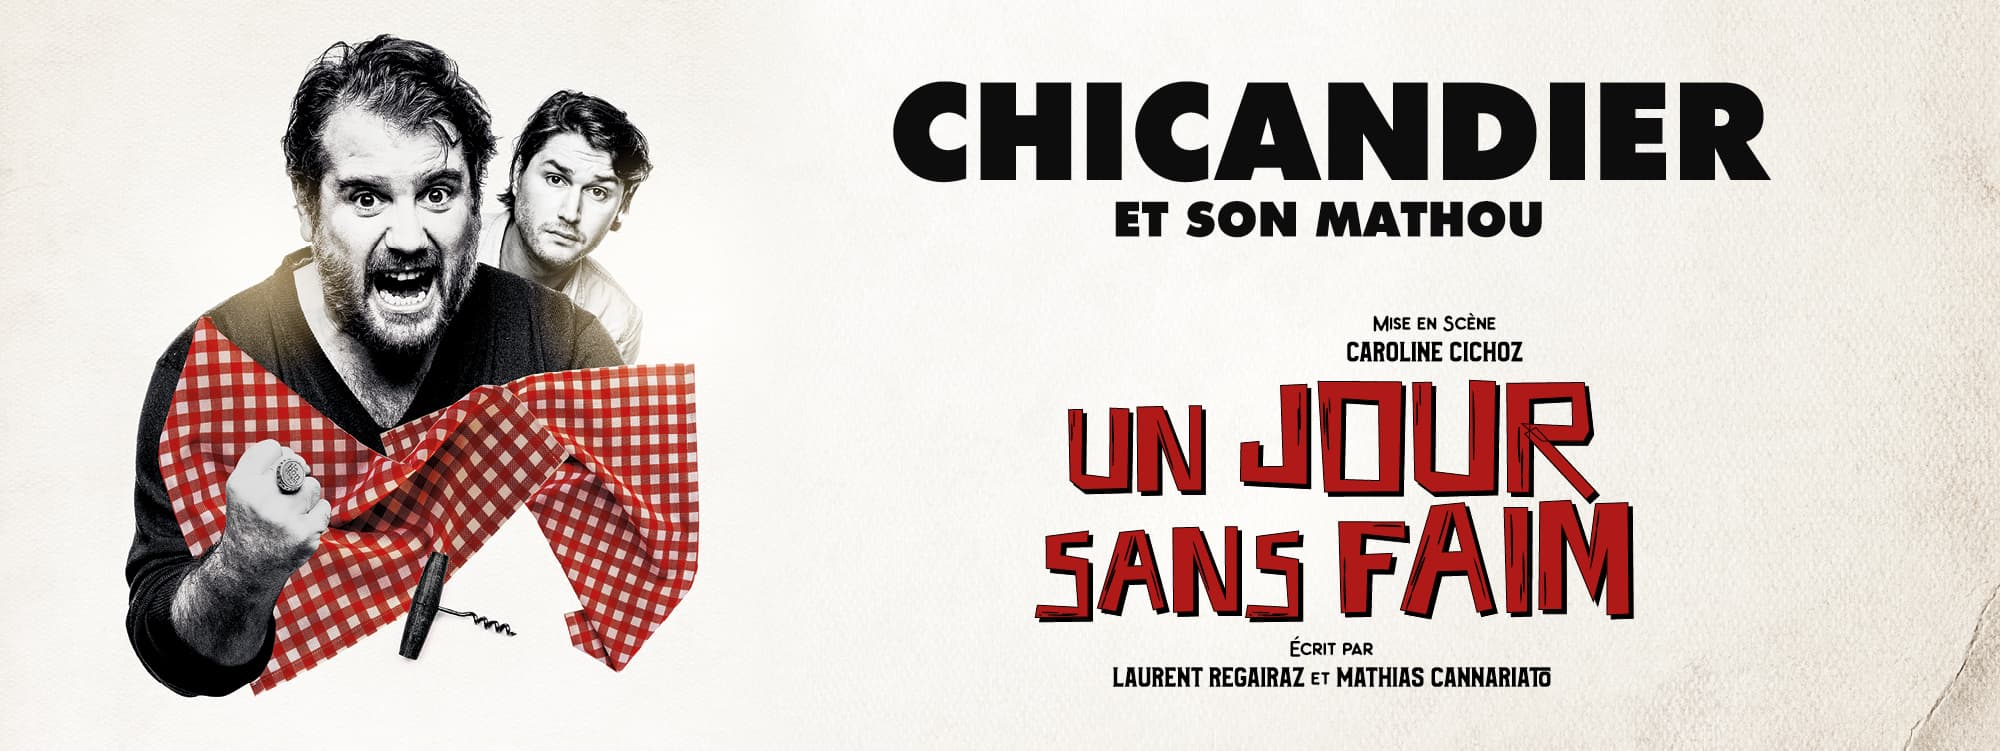 jason chicandier humour tournee france